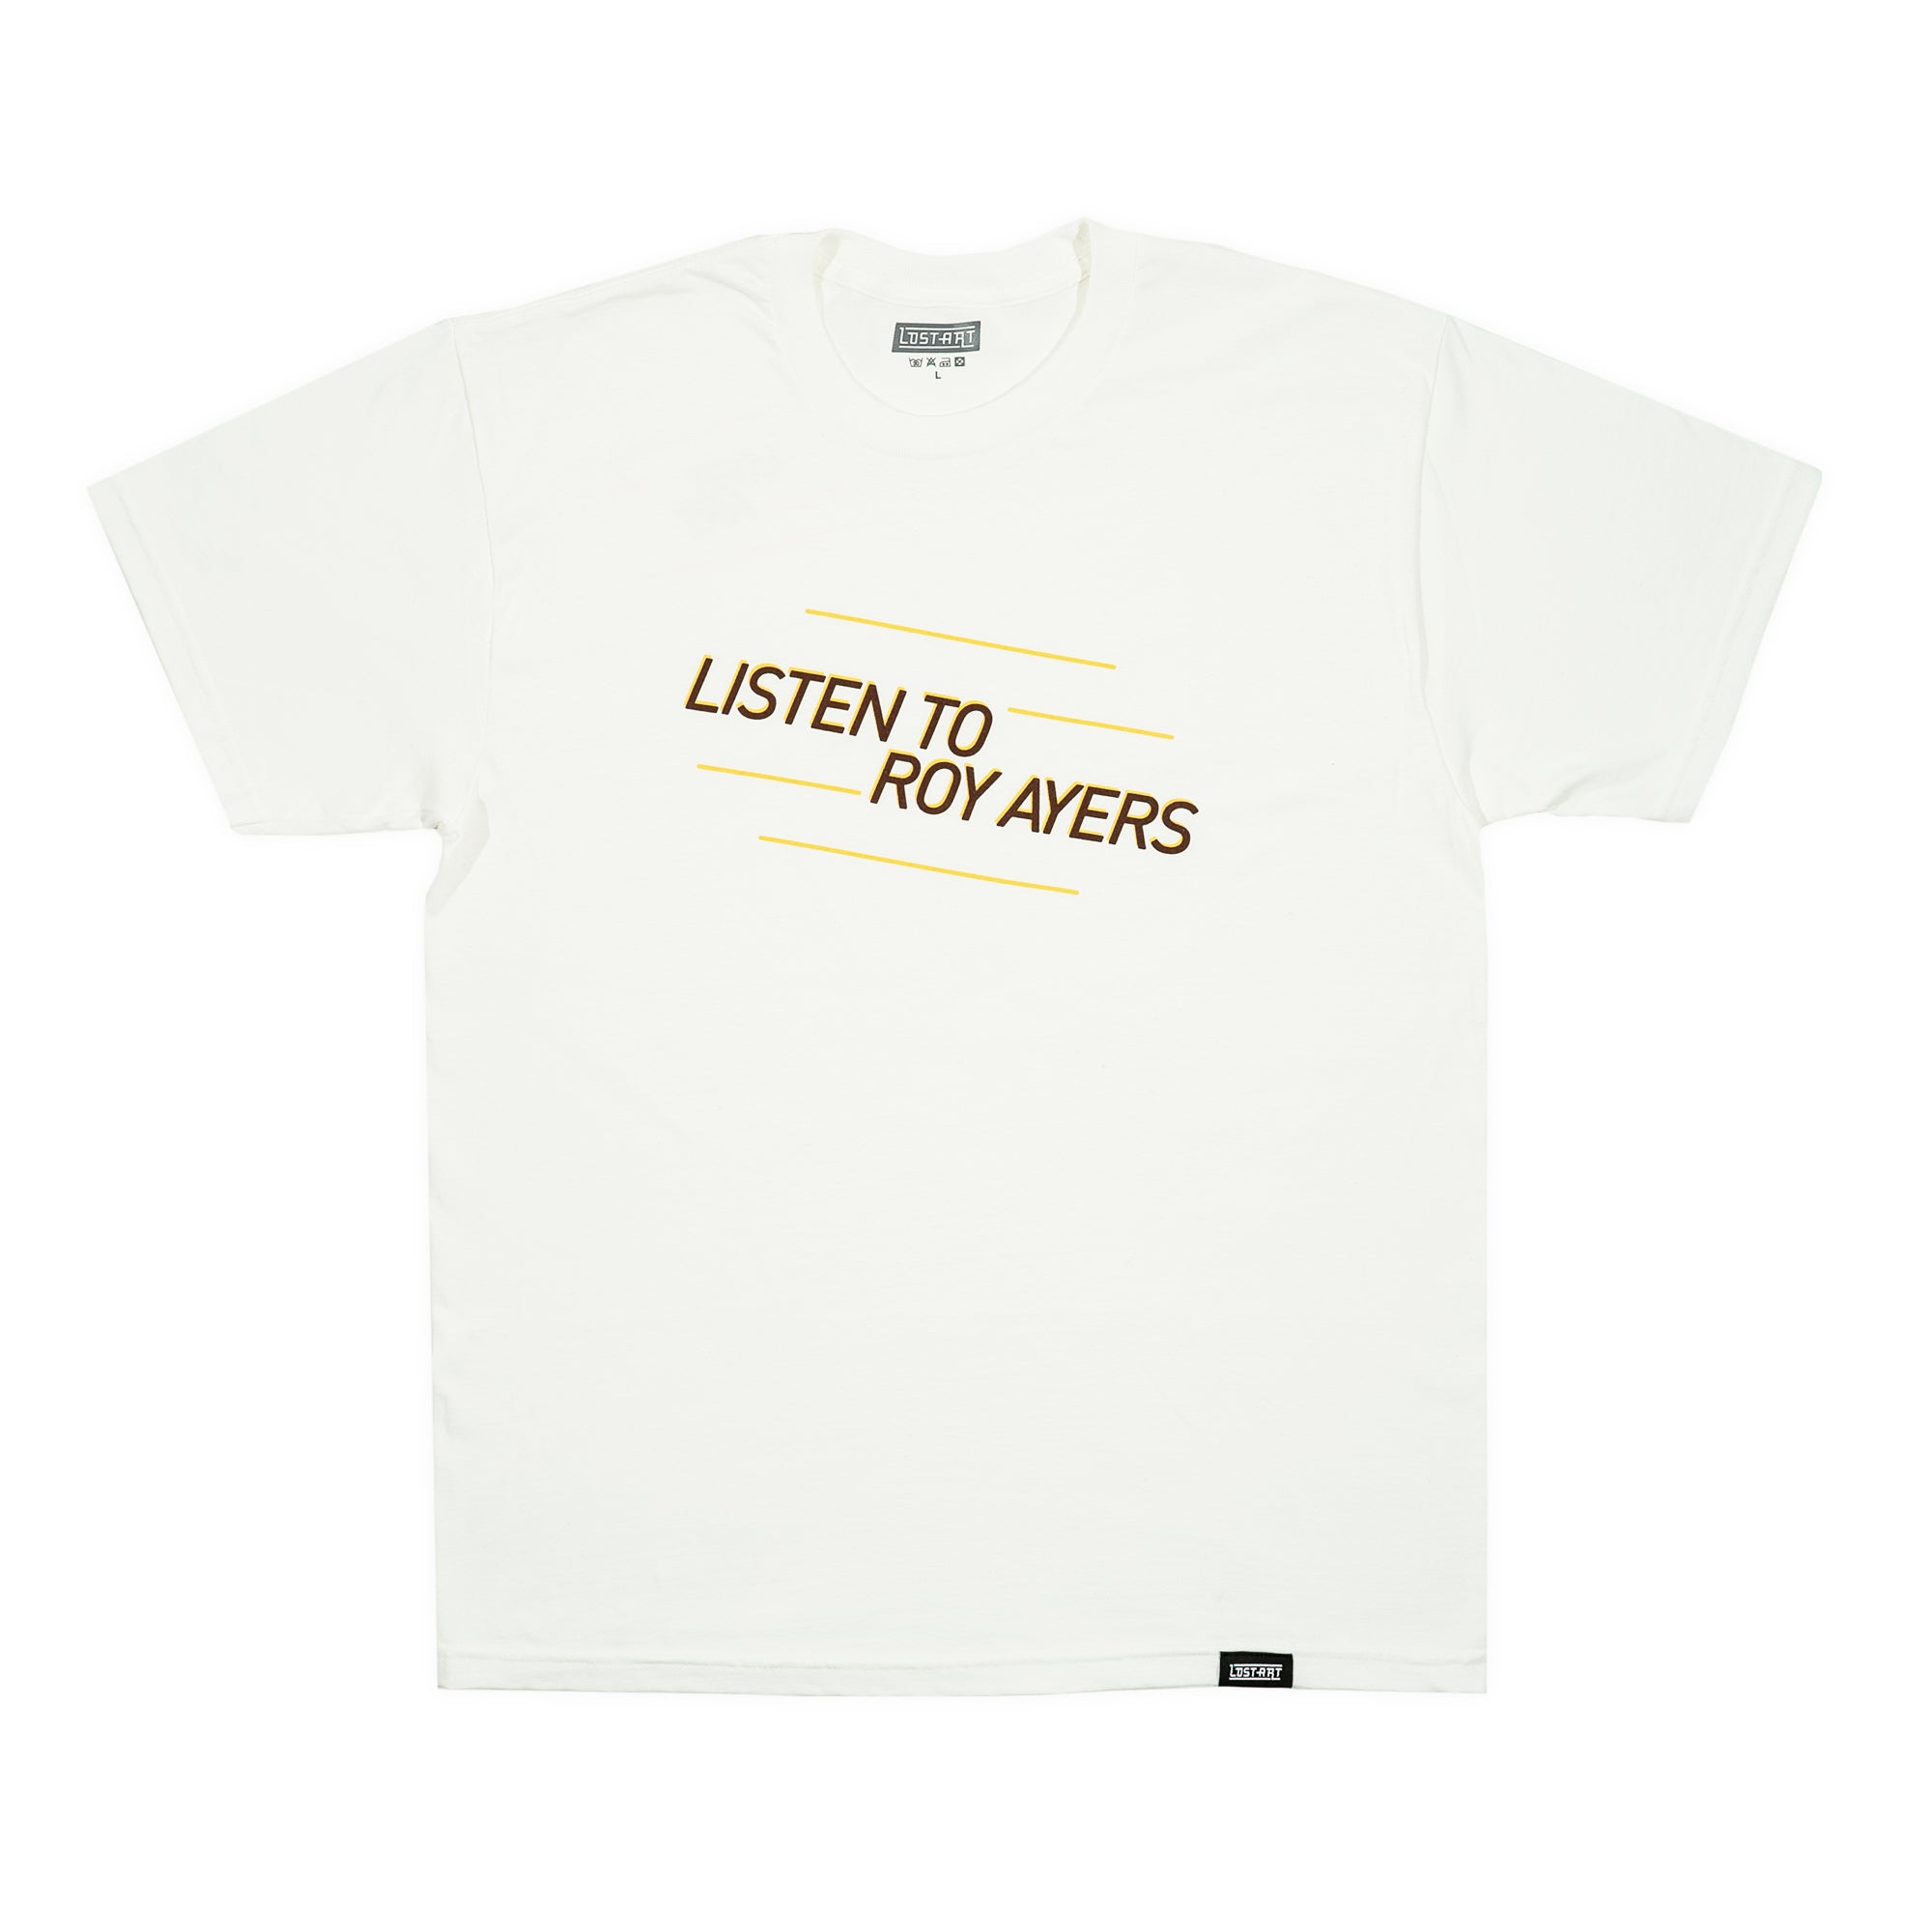 Lost Art -</br>Listen to Roy Ayers Tee </br> White